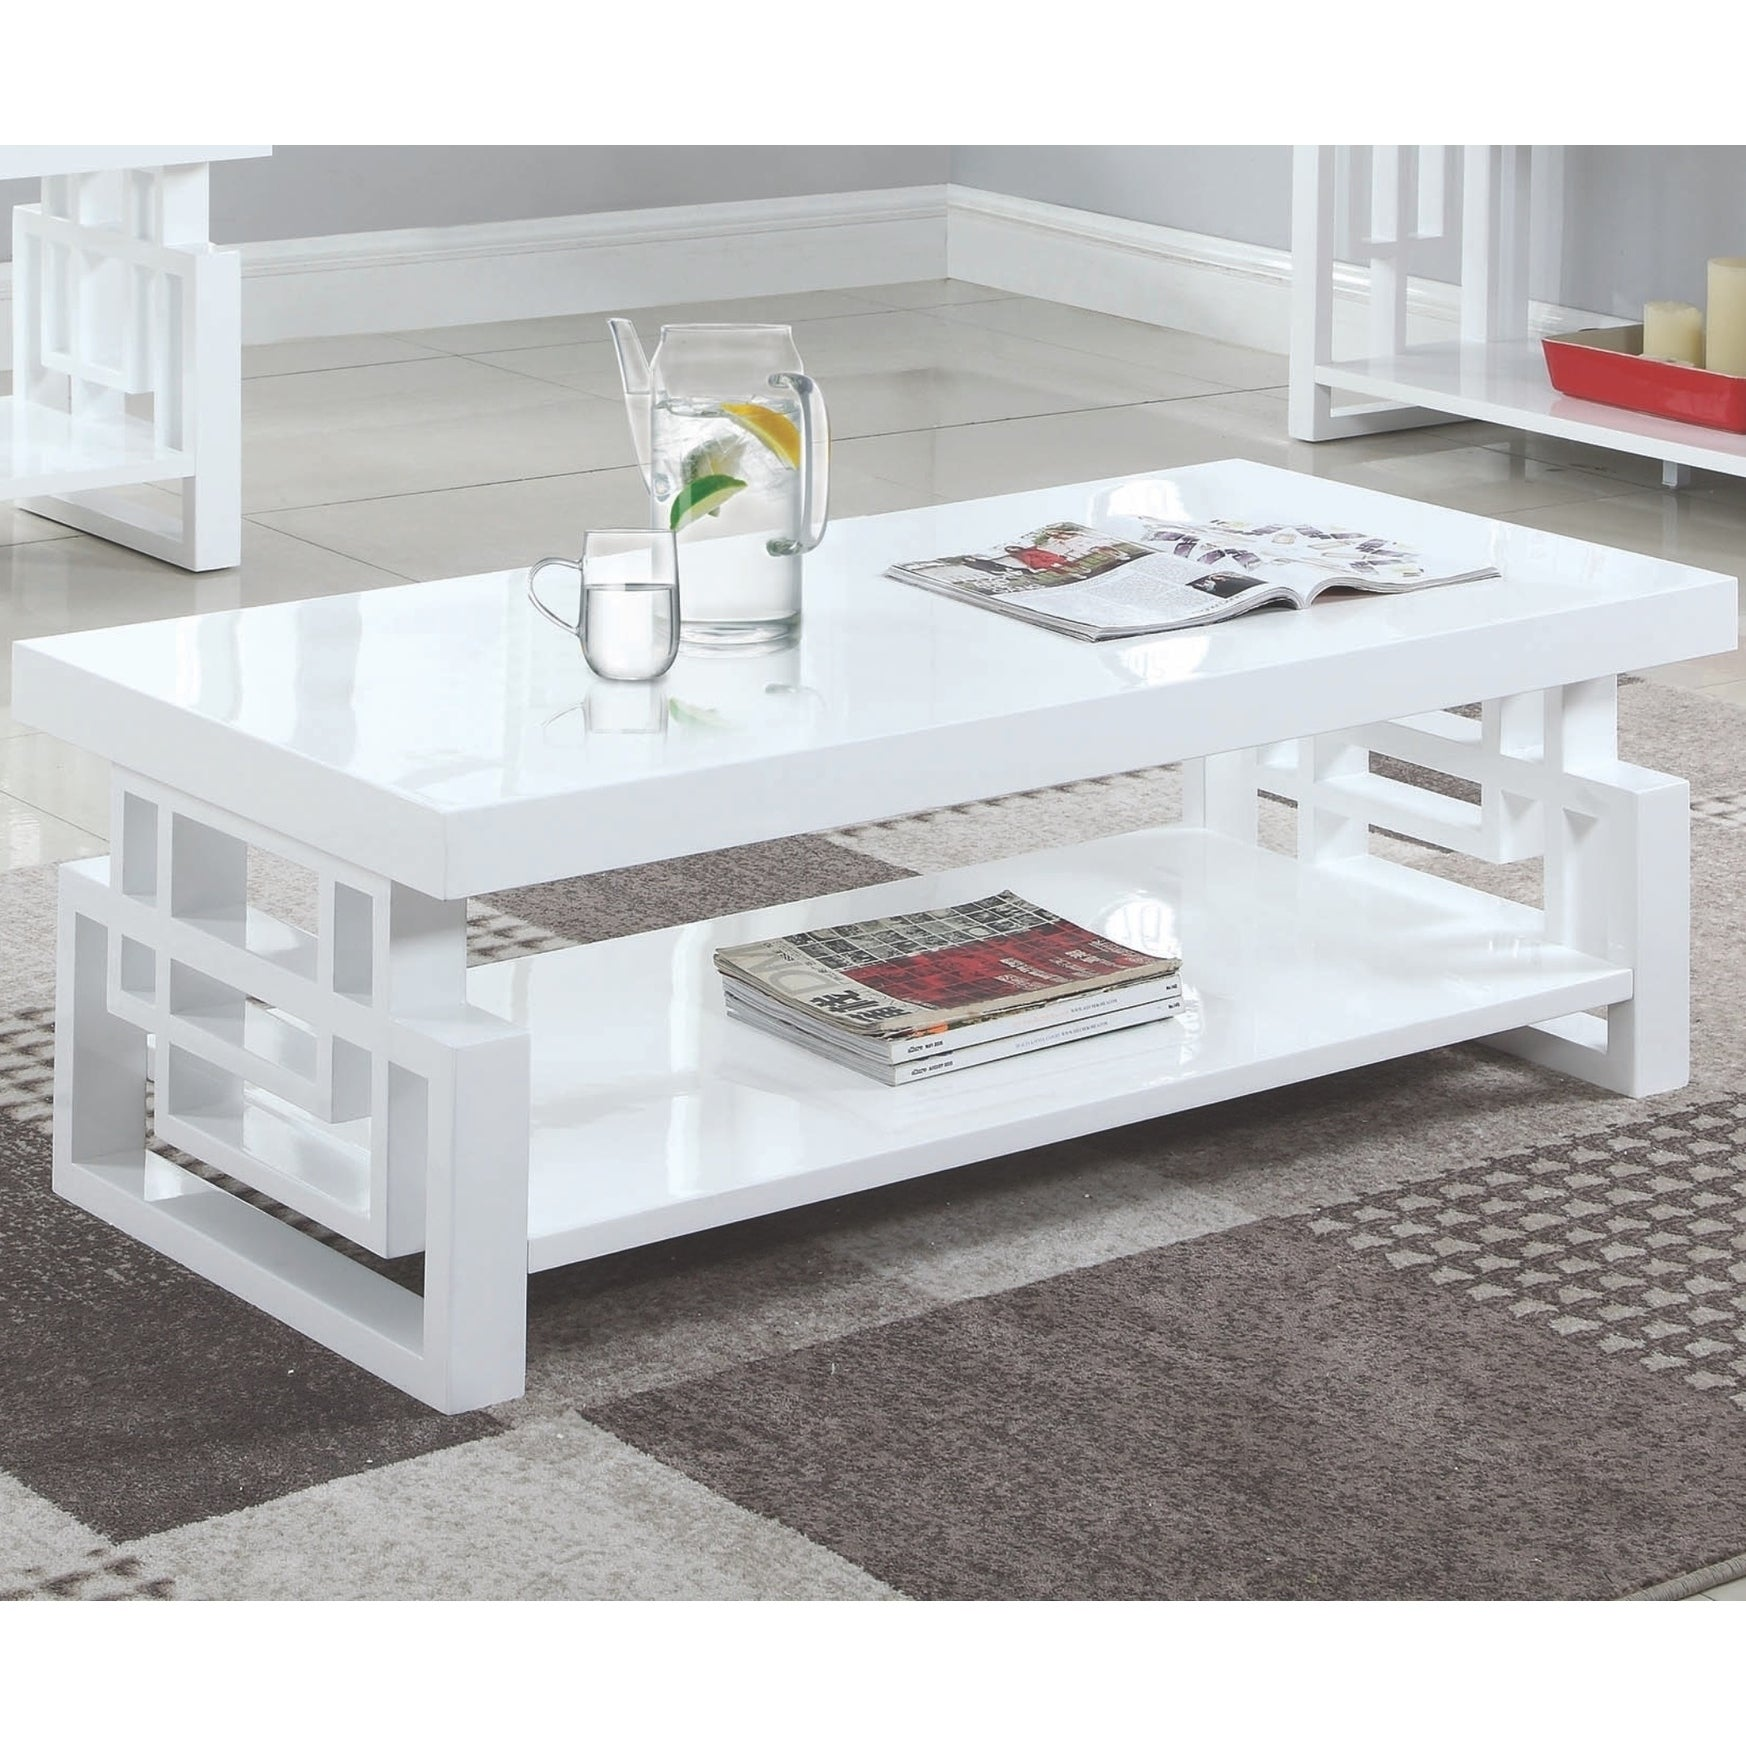 Modern Artistic Design High Glossy White Living Room Table Collection - Overstock - 29210670 - Coffee Table Only